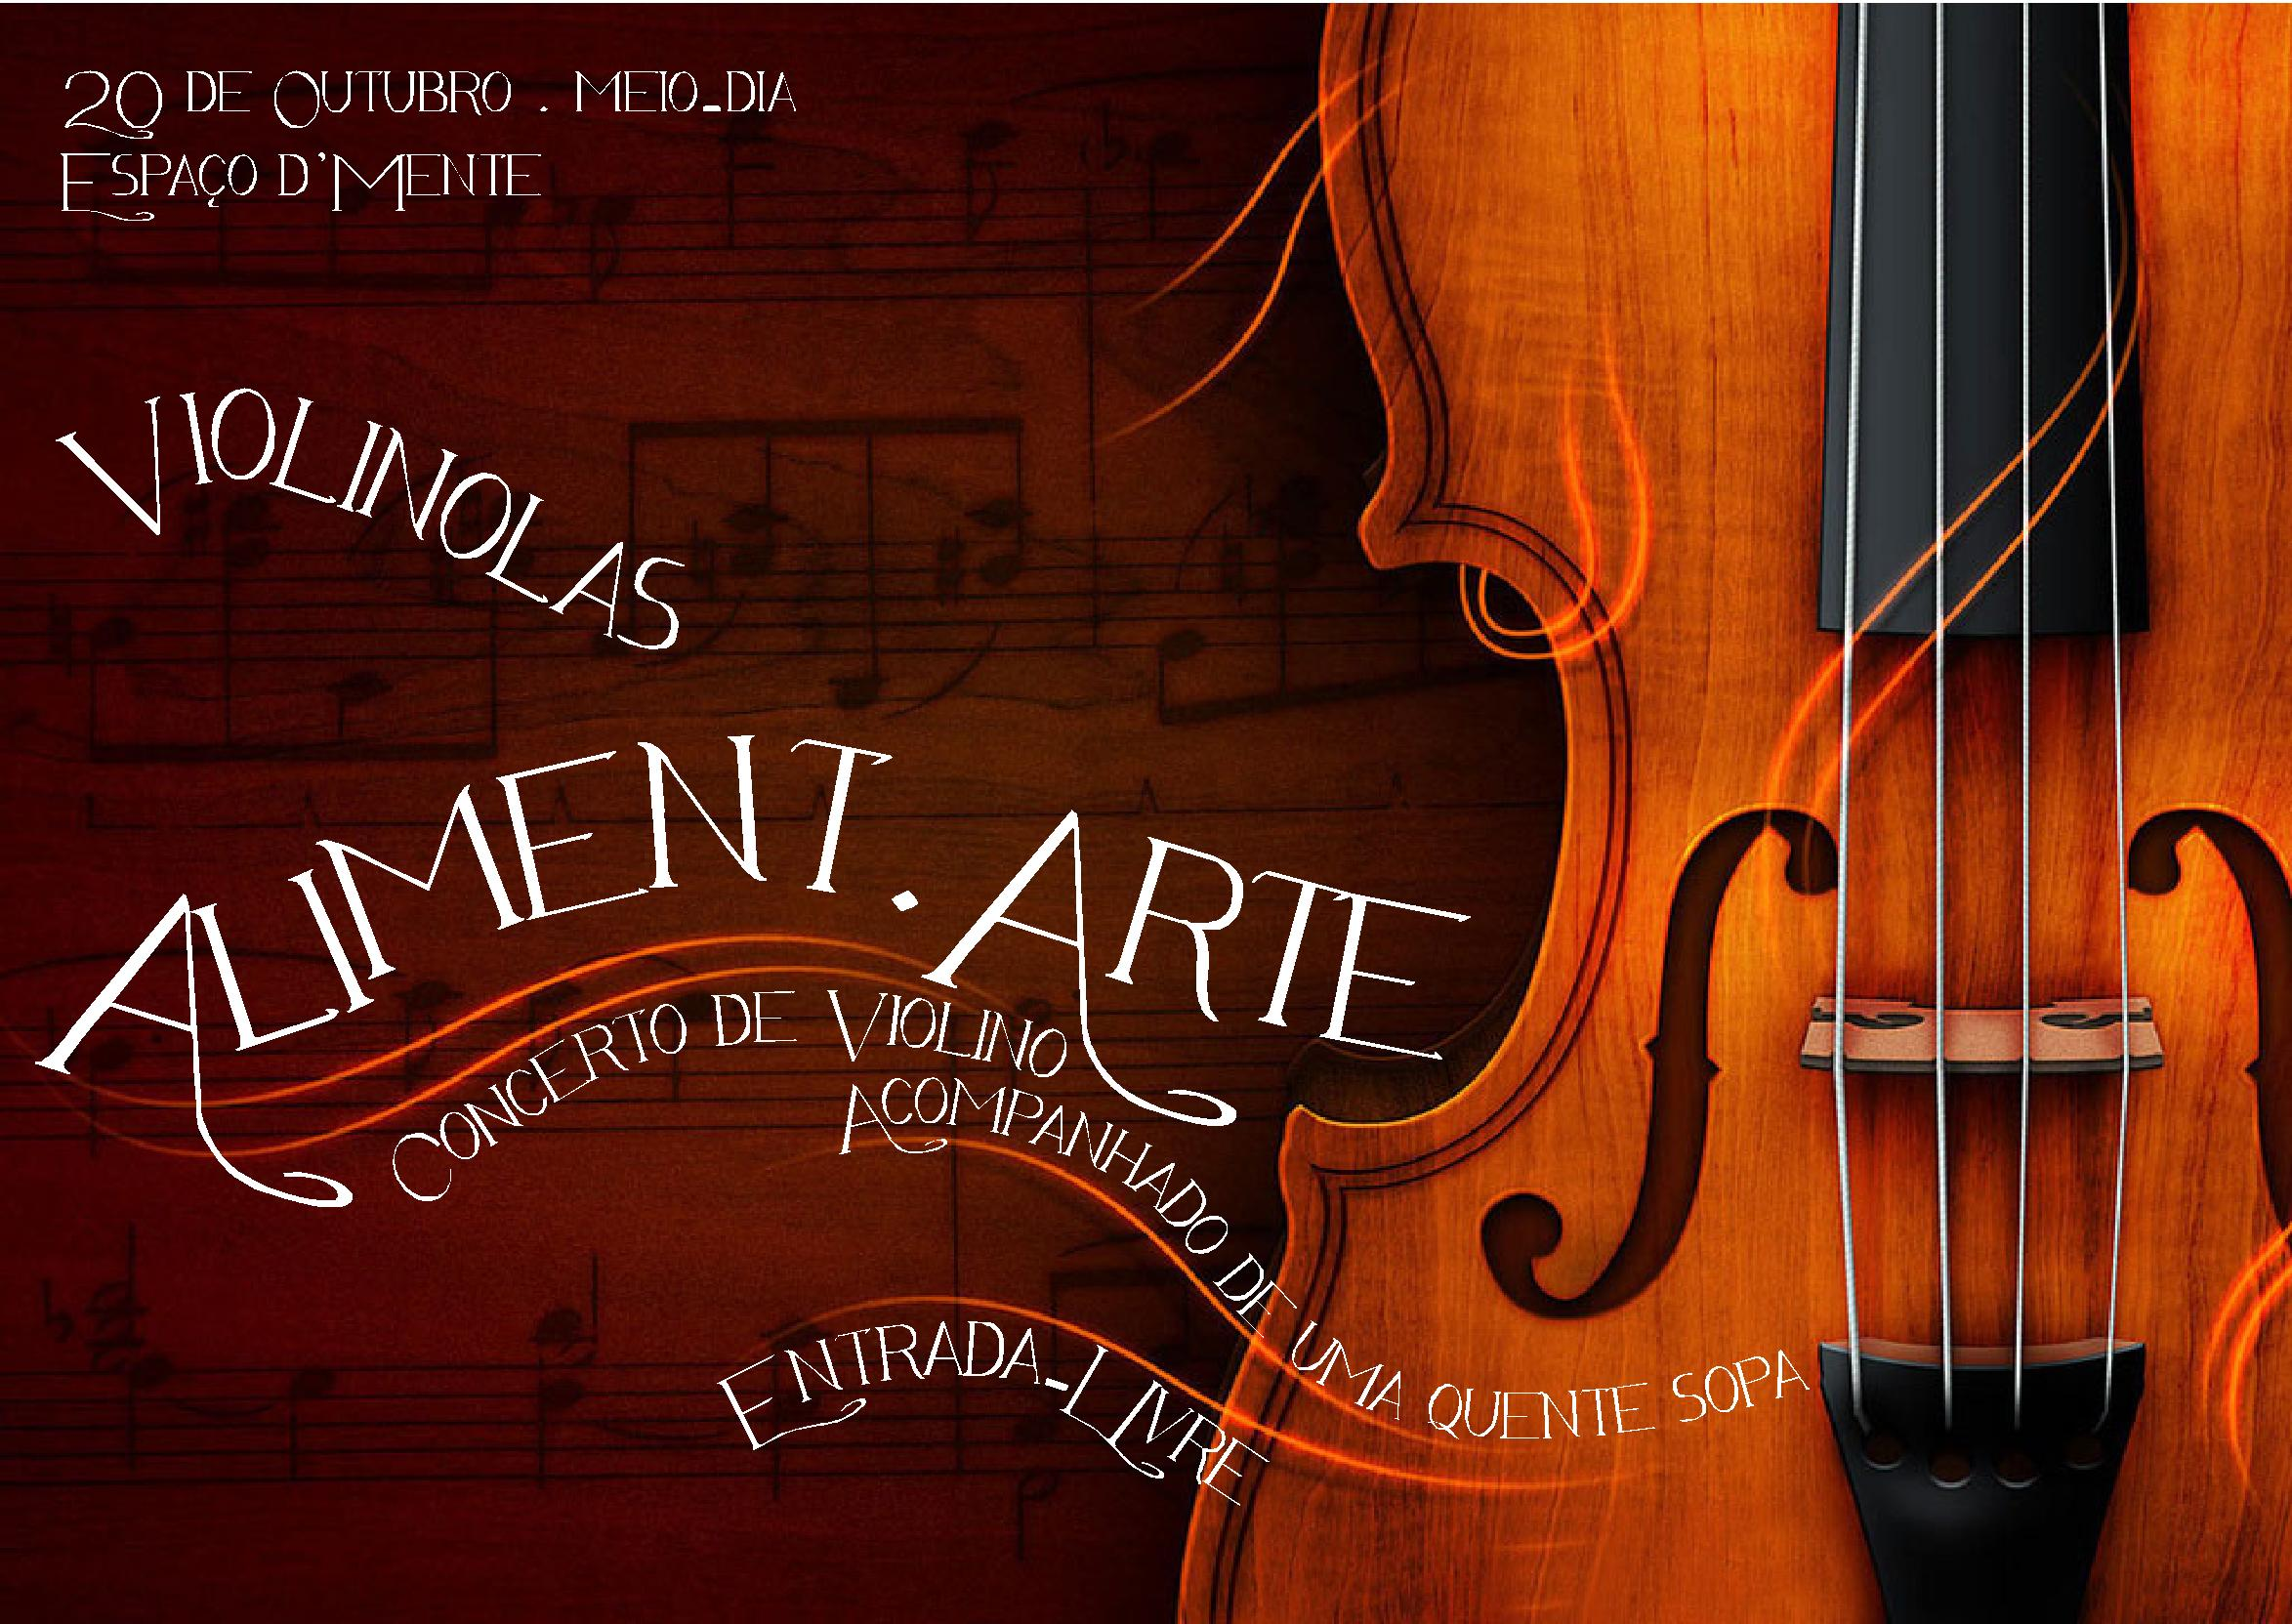 aliment_arte_OUT